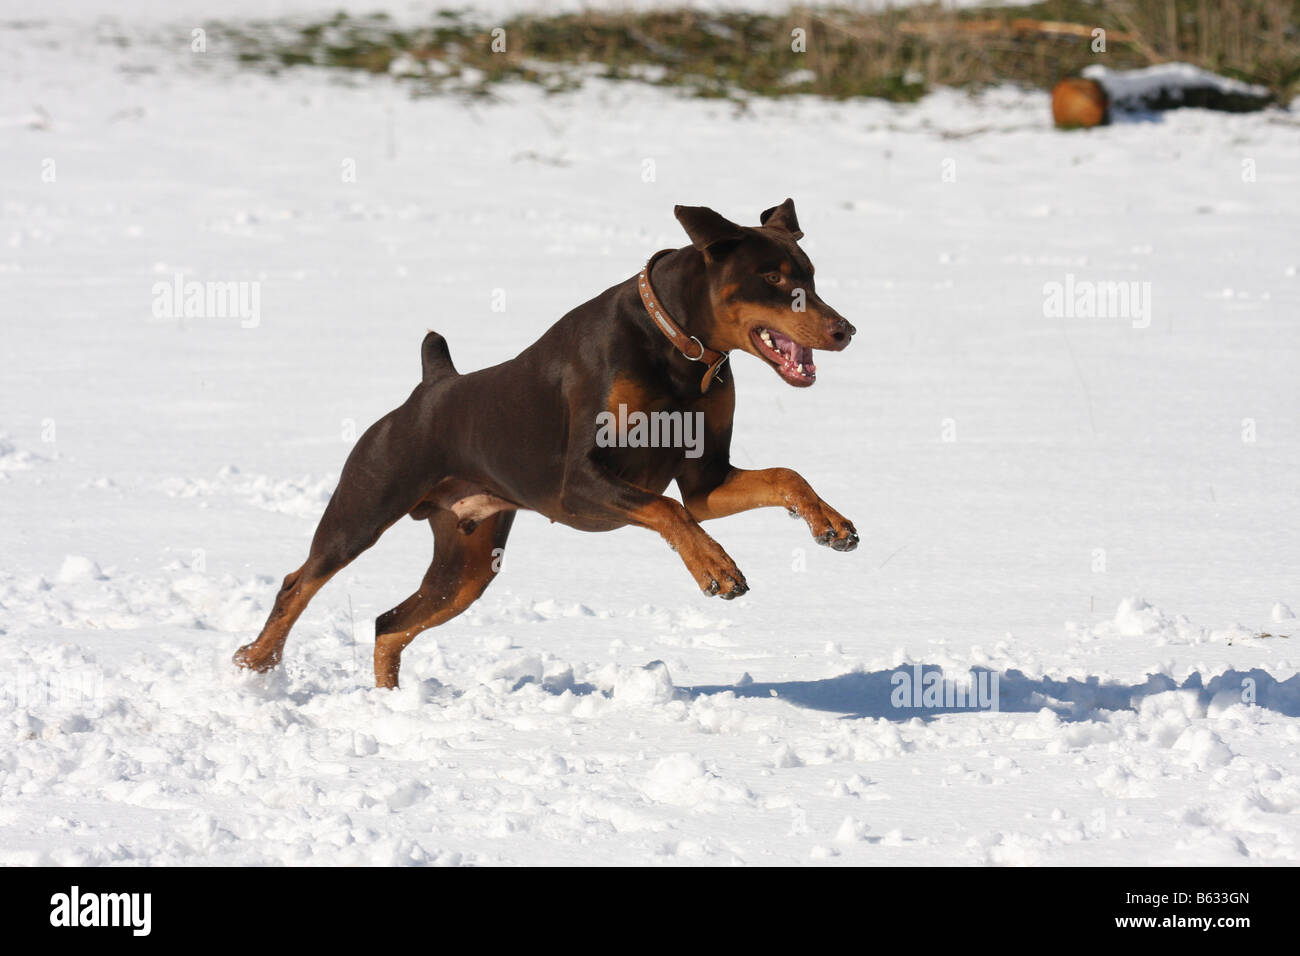 Brown, Chocolate Doberman running and playing in the snow. - Stock Image